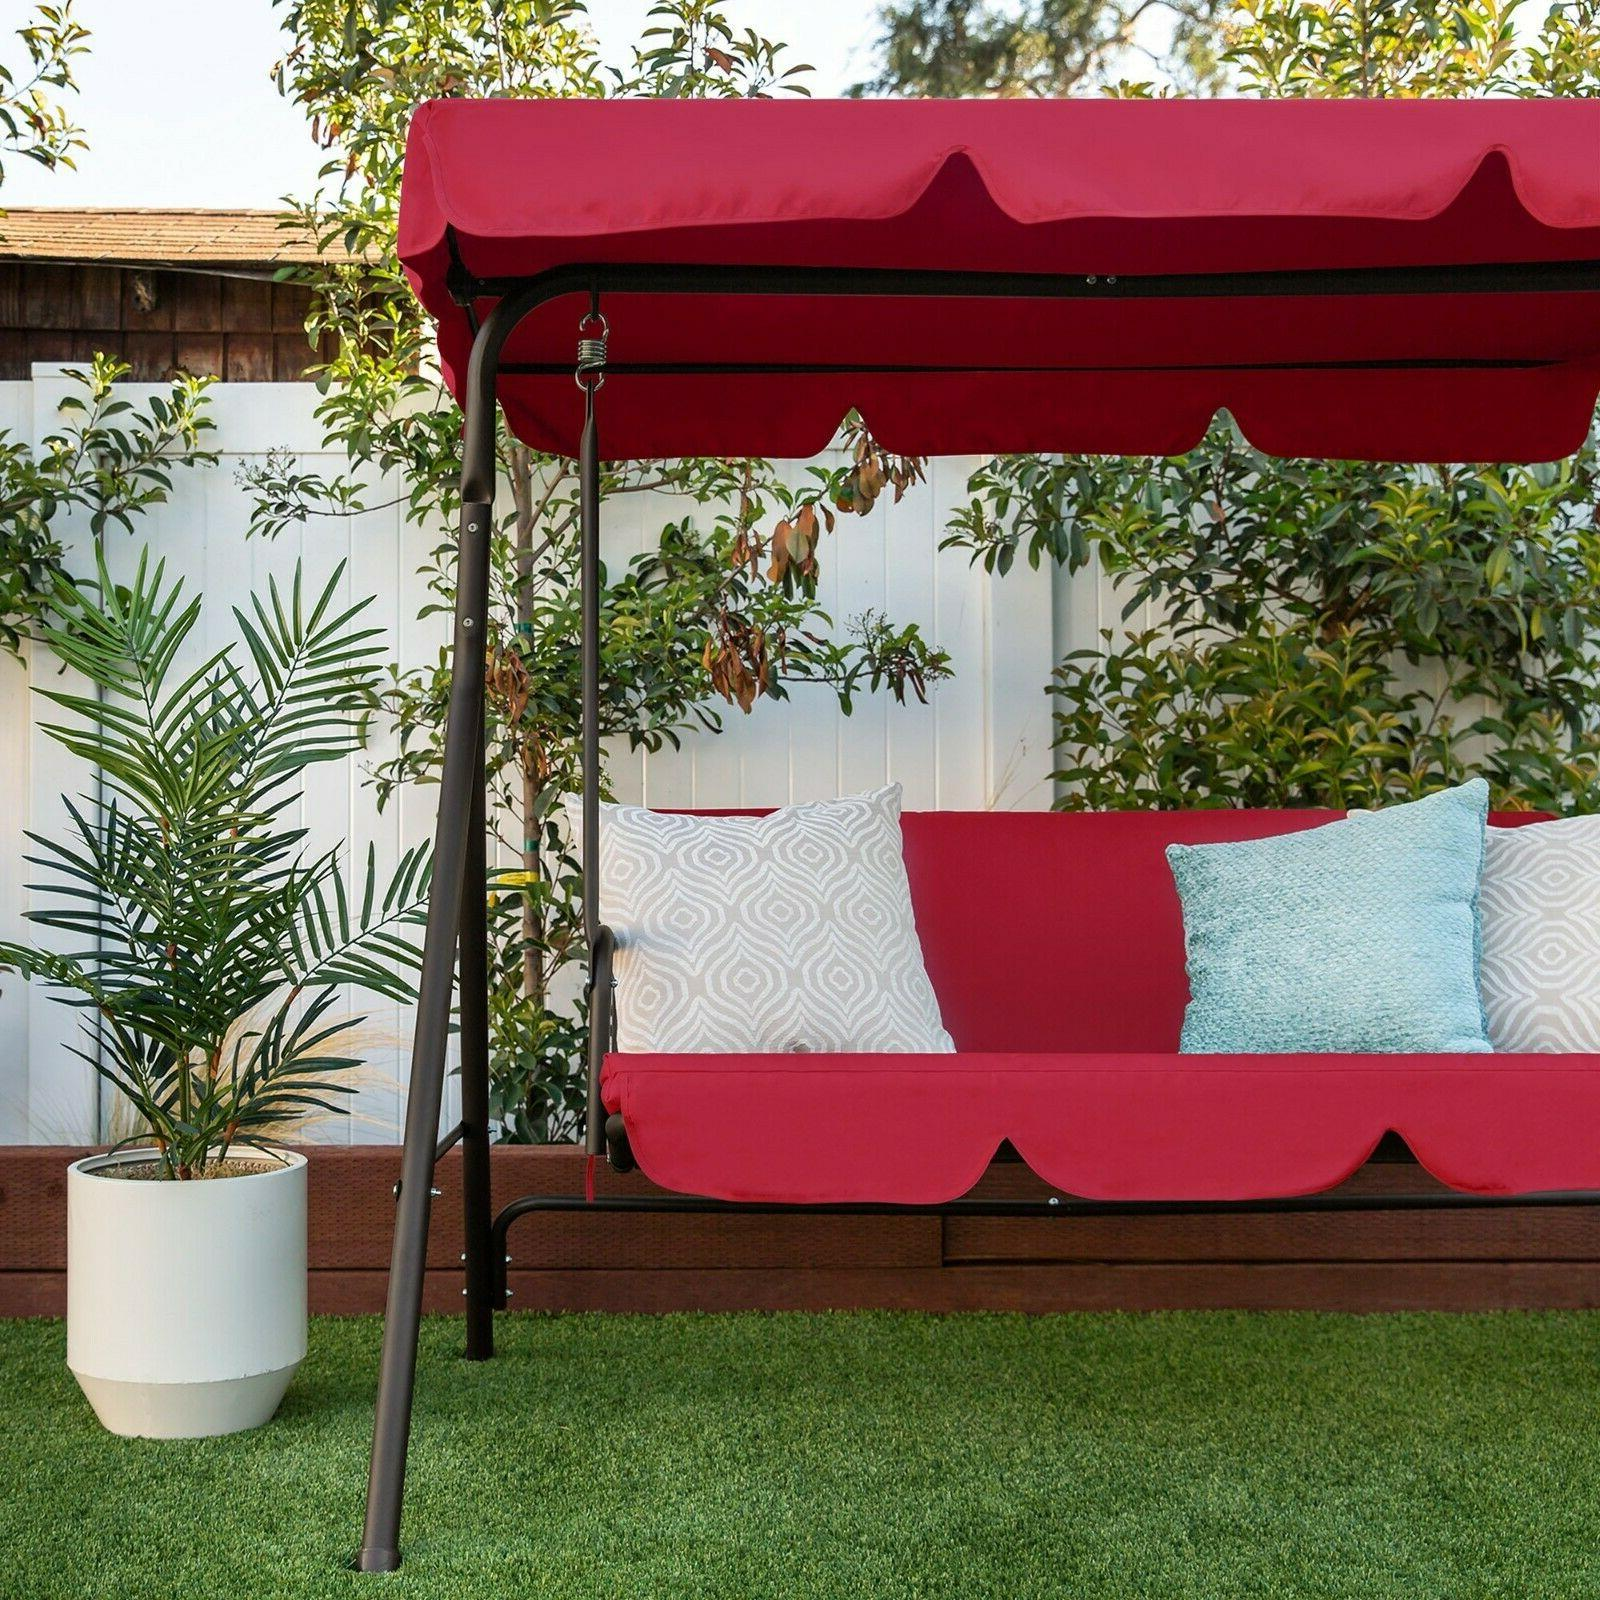 2 Outdoor Canopy Swing Furniture Porch Bench Cushions